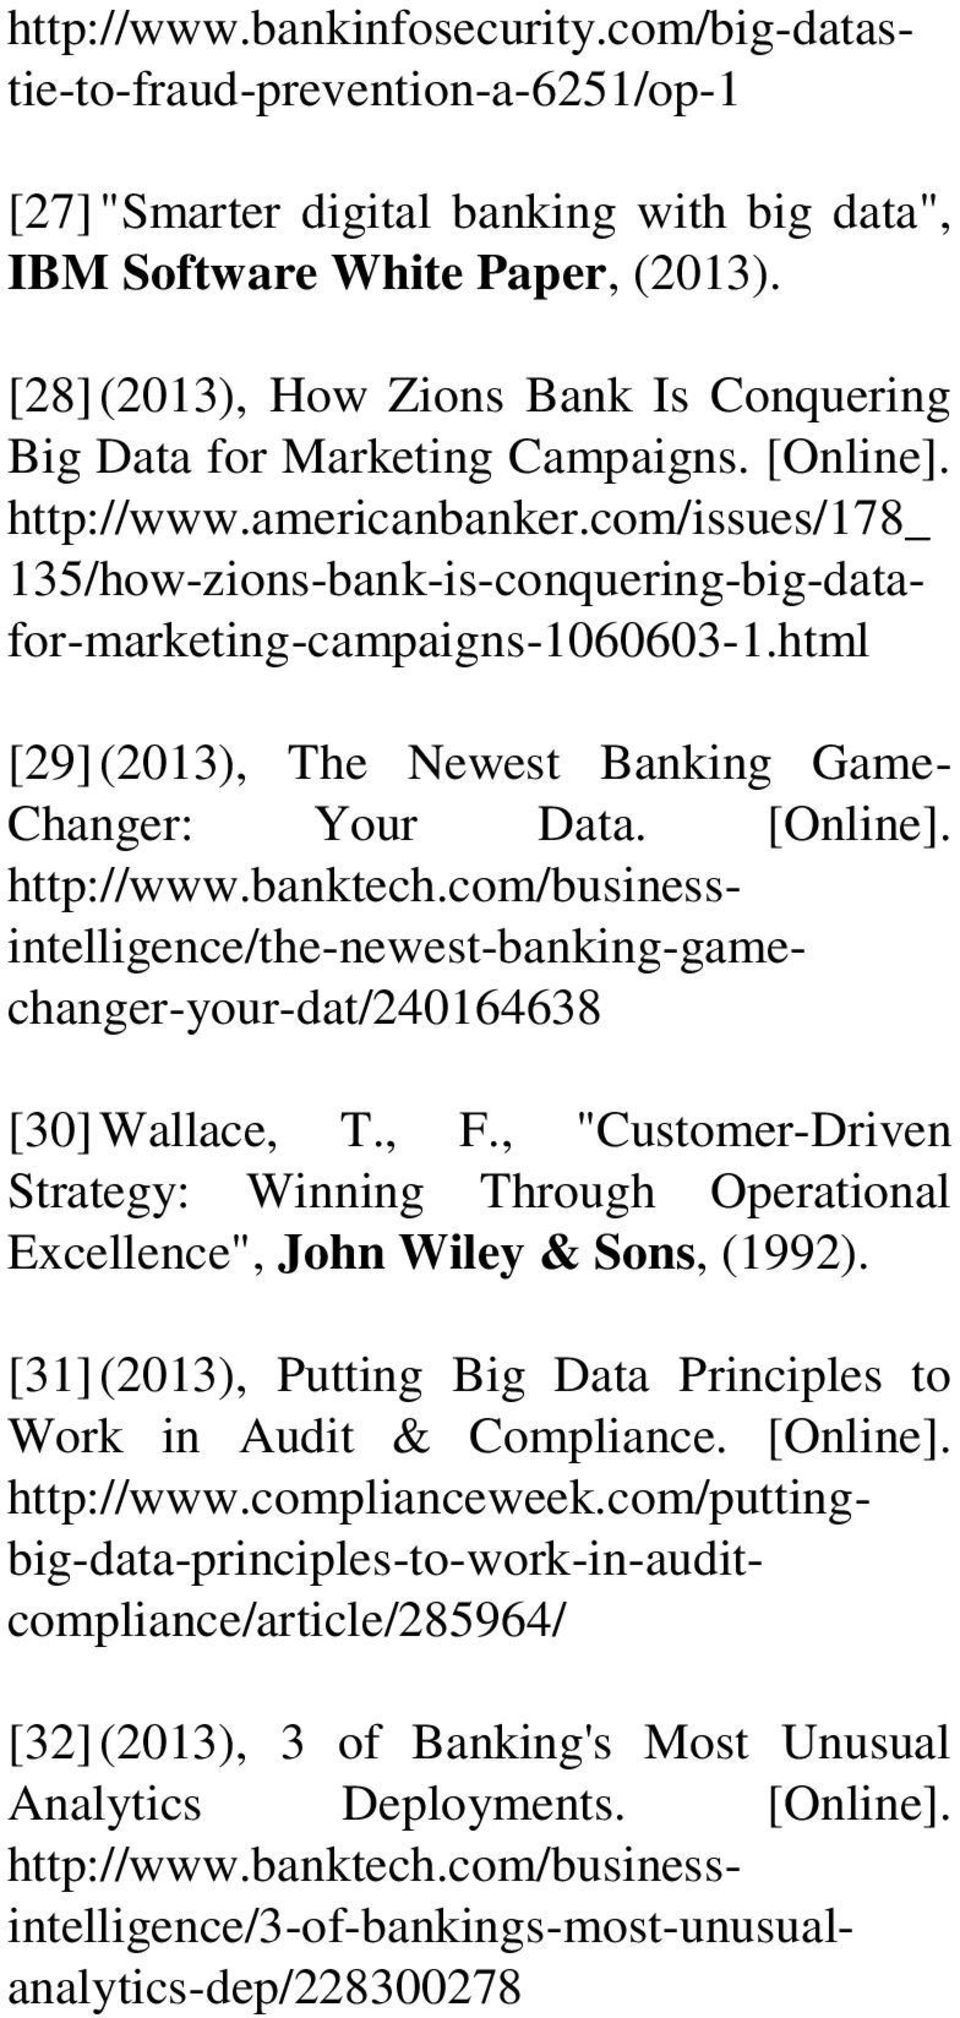 com/issues/178_ 135/how-zions-bank-is-conquering-big-datafor-marketing-campaigns-1060603-1.html [29] (2013), The Newest Banking Game- Changer: Your Data. [Online]. http://www.banktech.